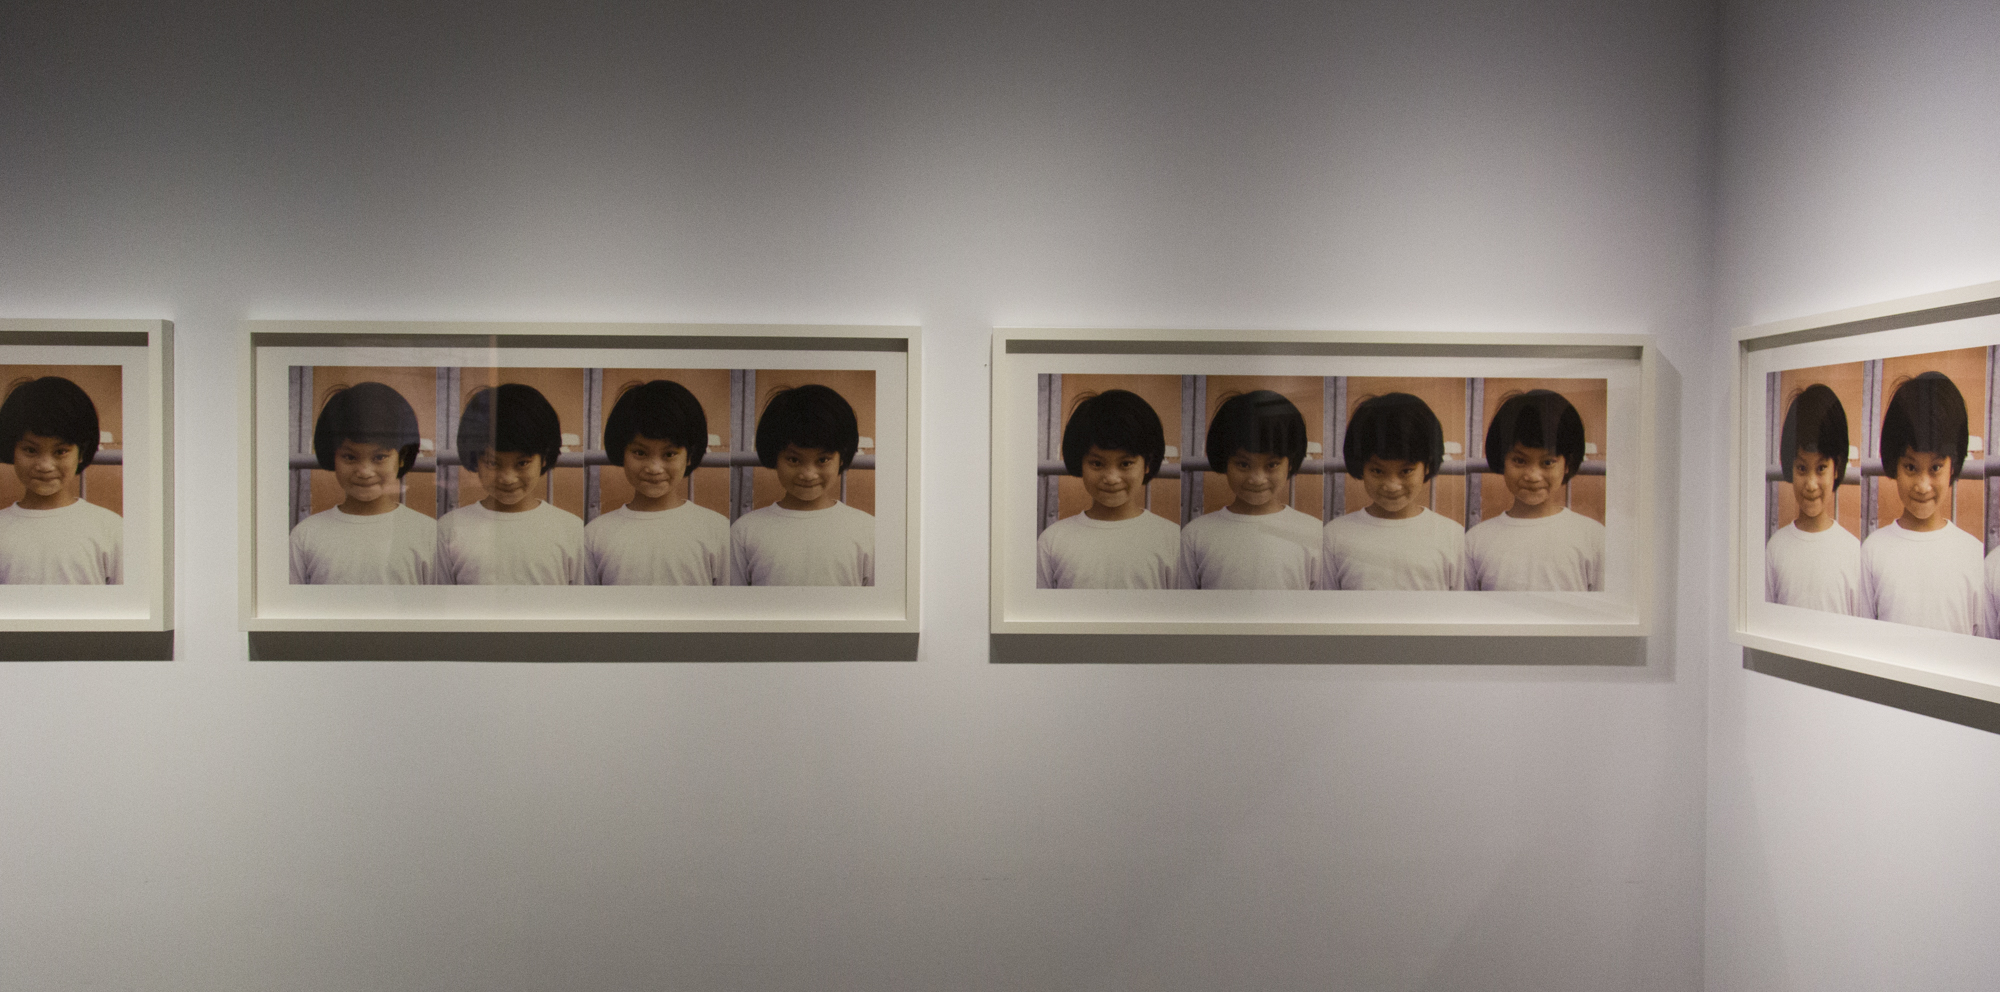 Alfredo Jaar, Hundred Times Nguyen, 1994, 24 fotografías enmarcadas, 63.5×137 cm c/u. Cortesía del artista y Power Station of Art. Foto: Jiang Wenyi.